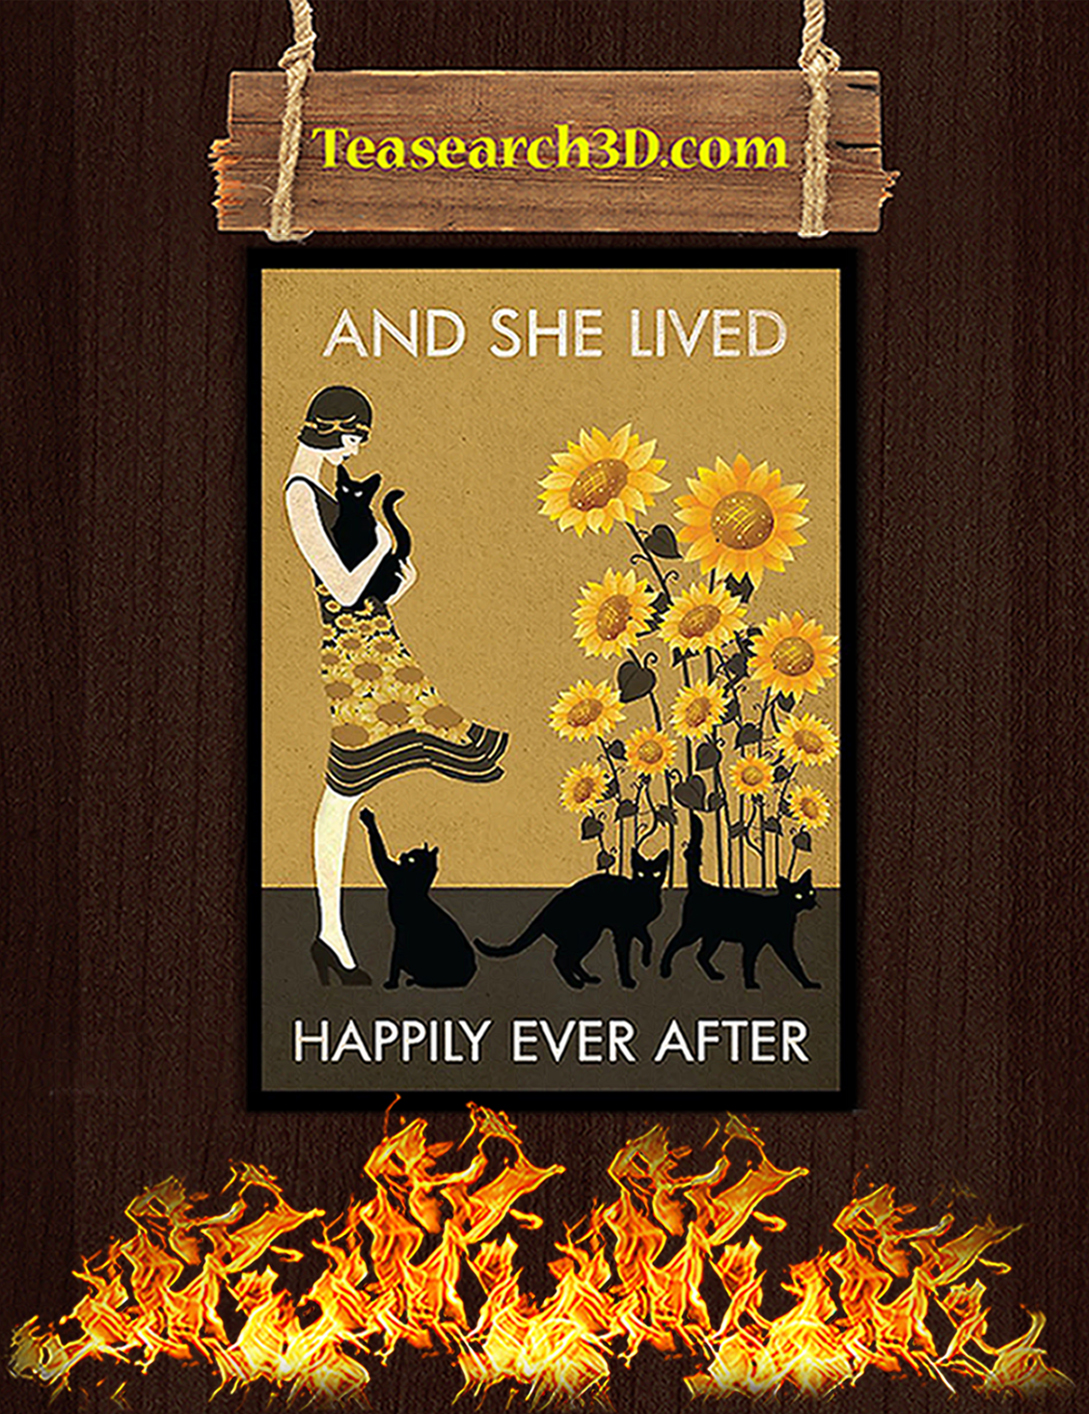 Black Cat And She Lived Happily Ever After Poster A2